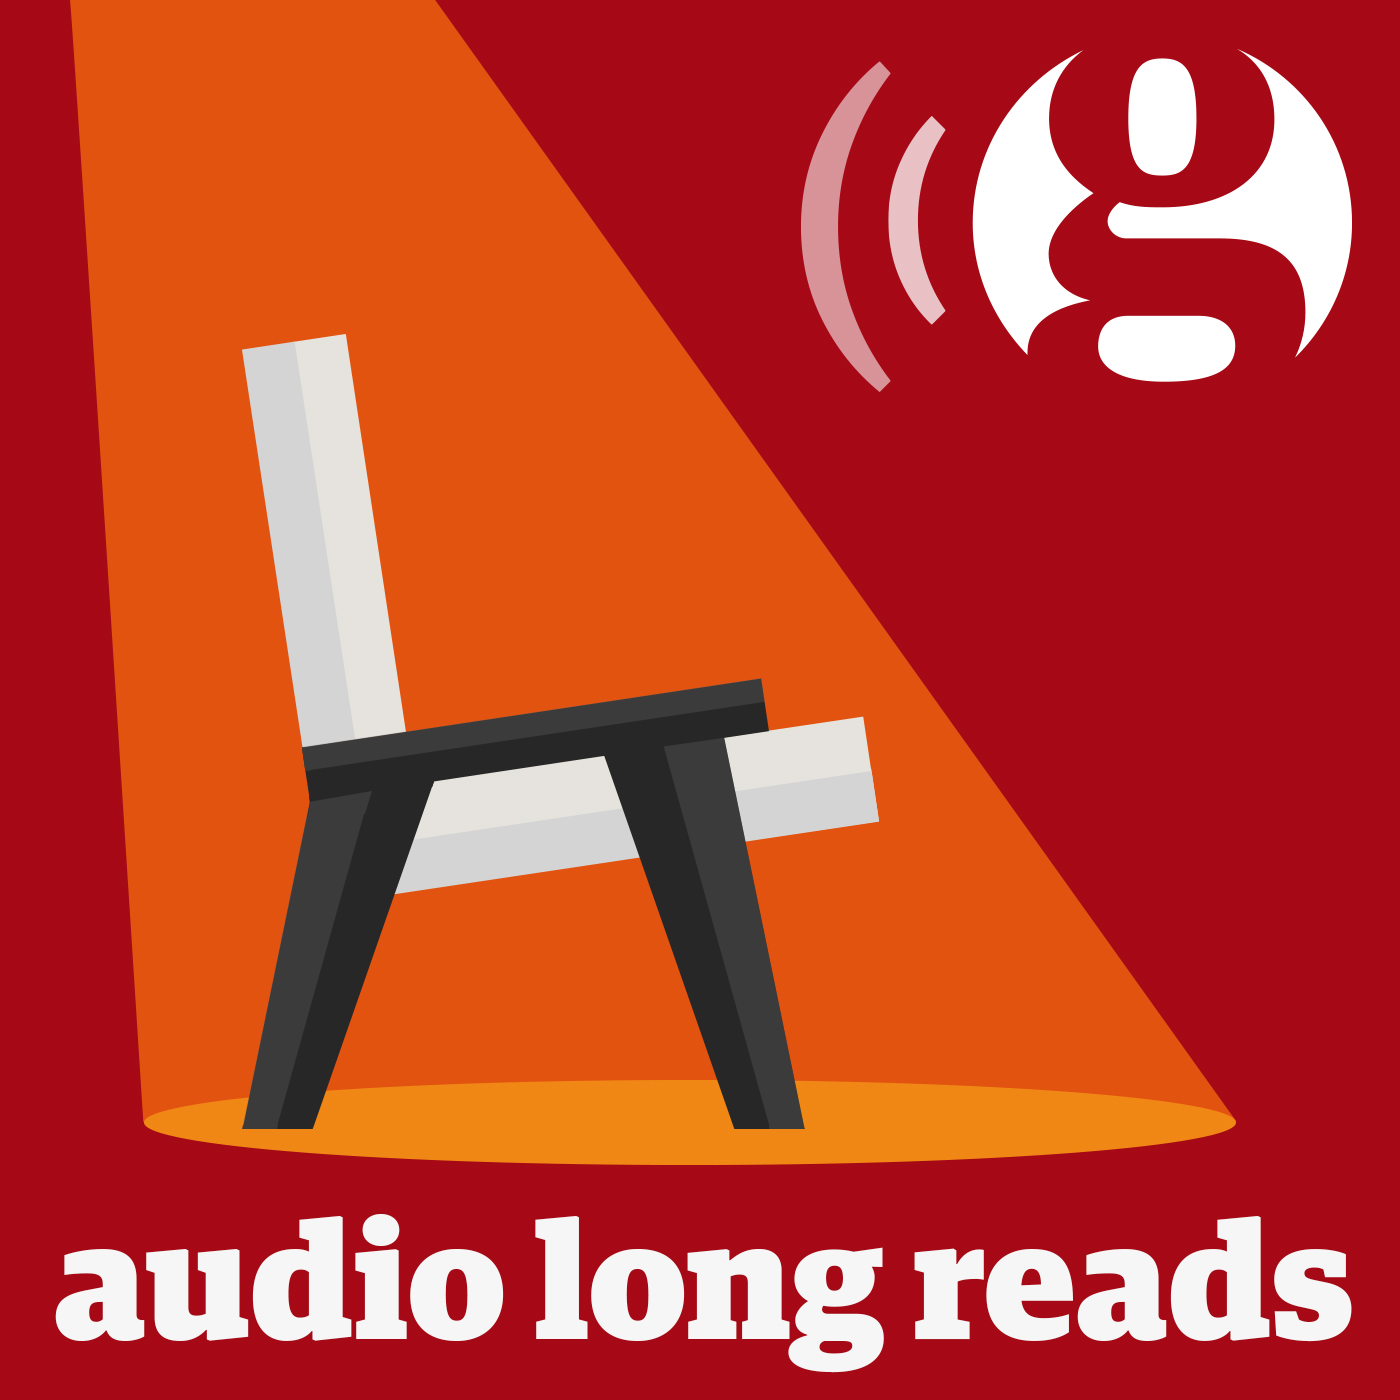 The Guardian's Audio Long Reads